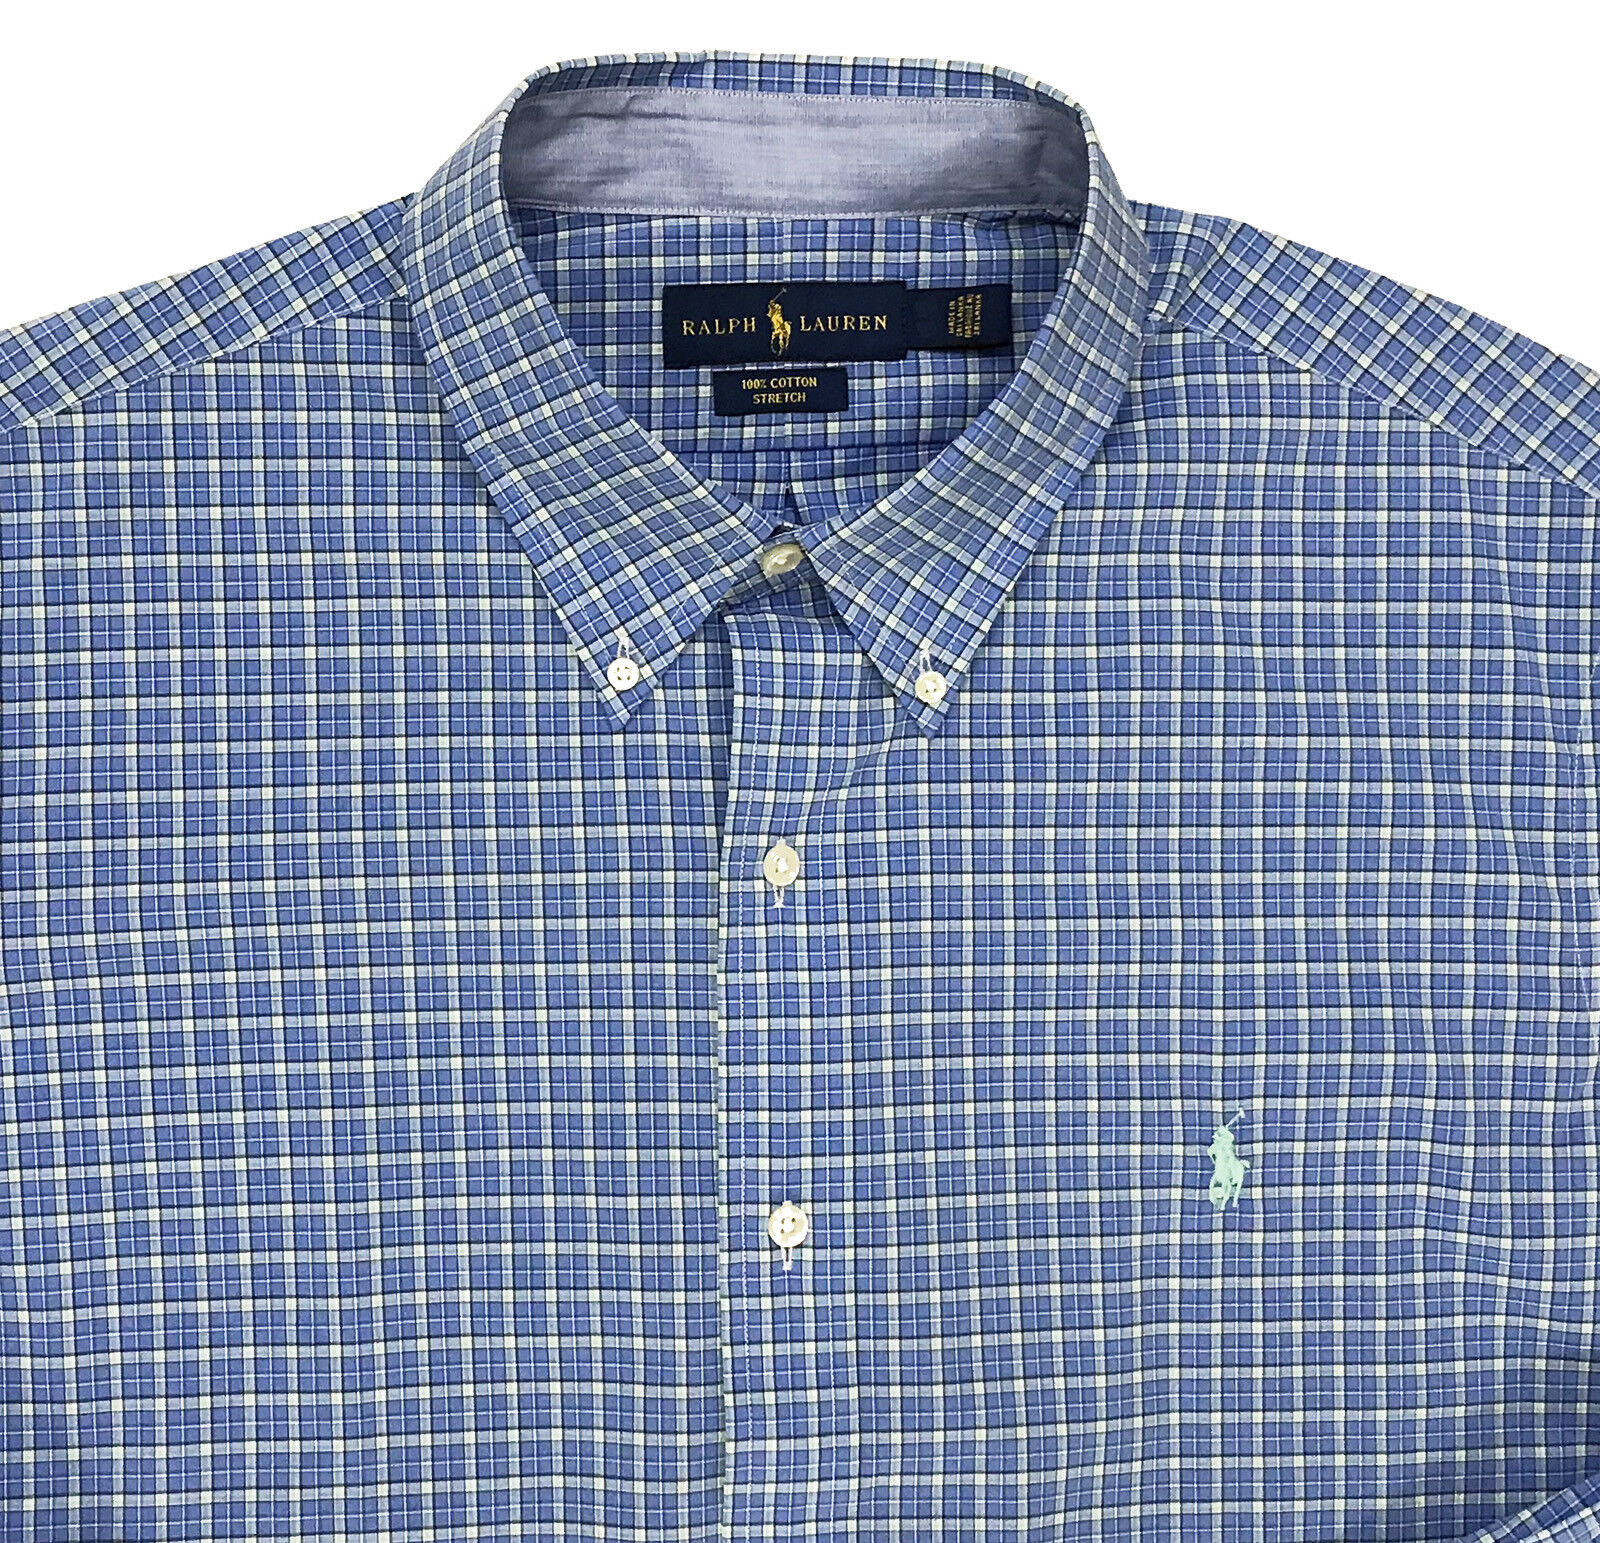 Men's RALPH LAUREN bluee Green + Plaid Shirt Cotton Stretch 2XB 2X 2XL BIG NWT